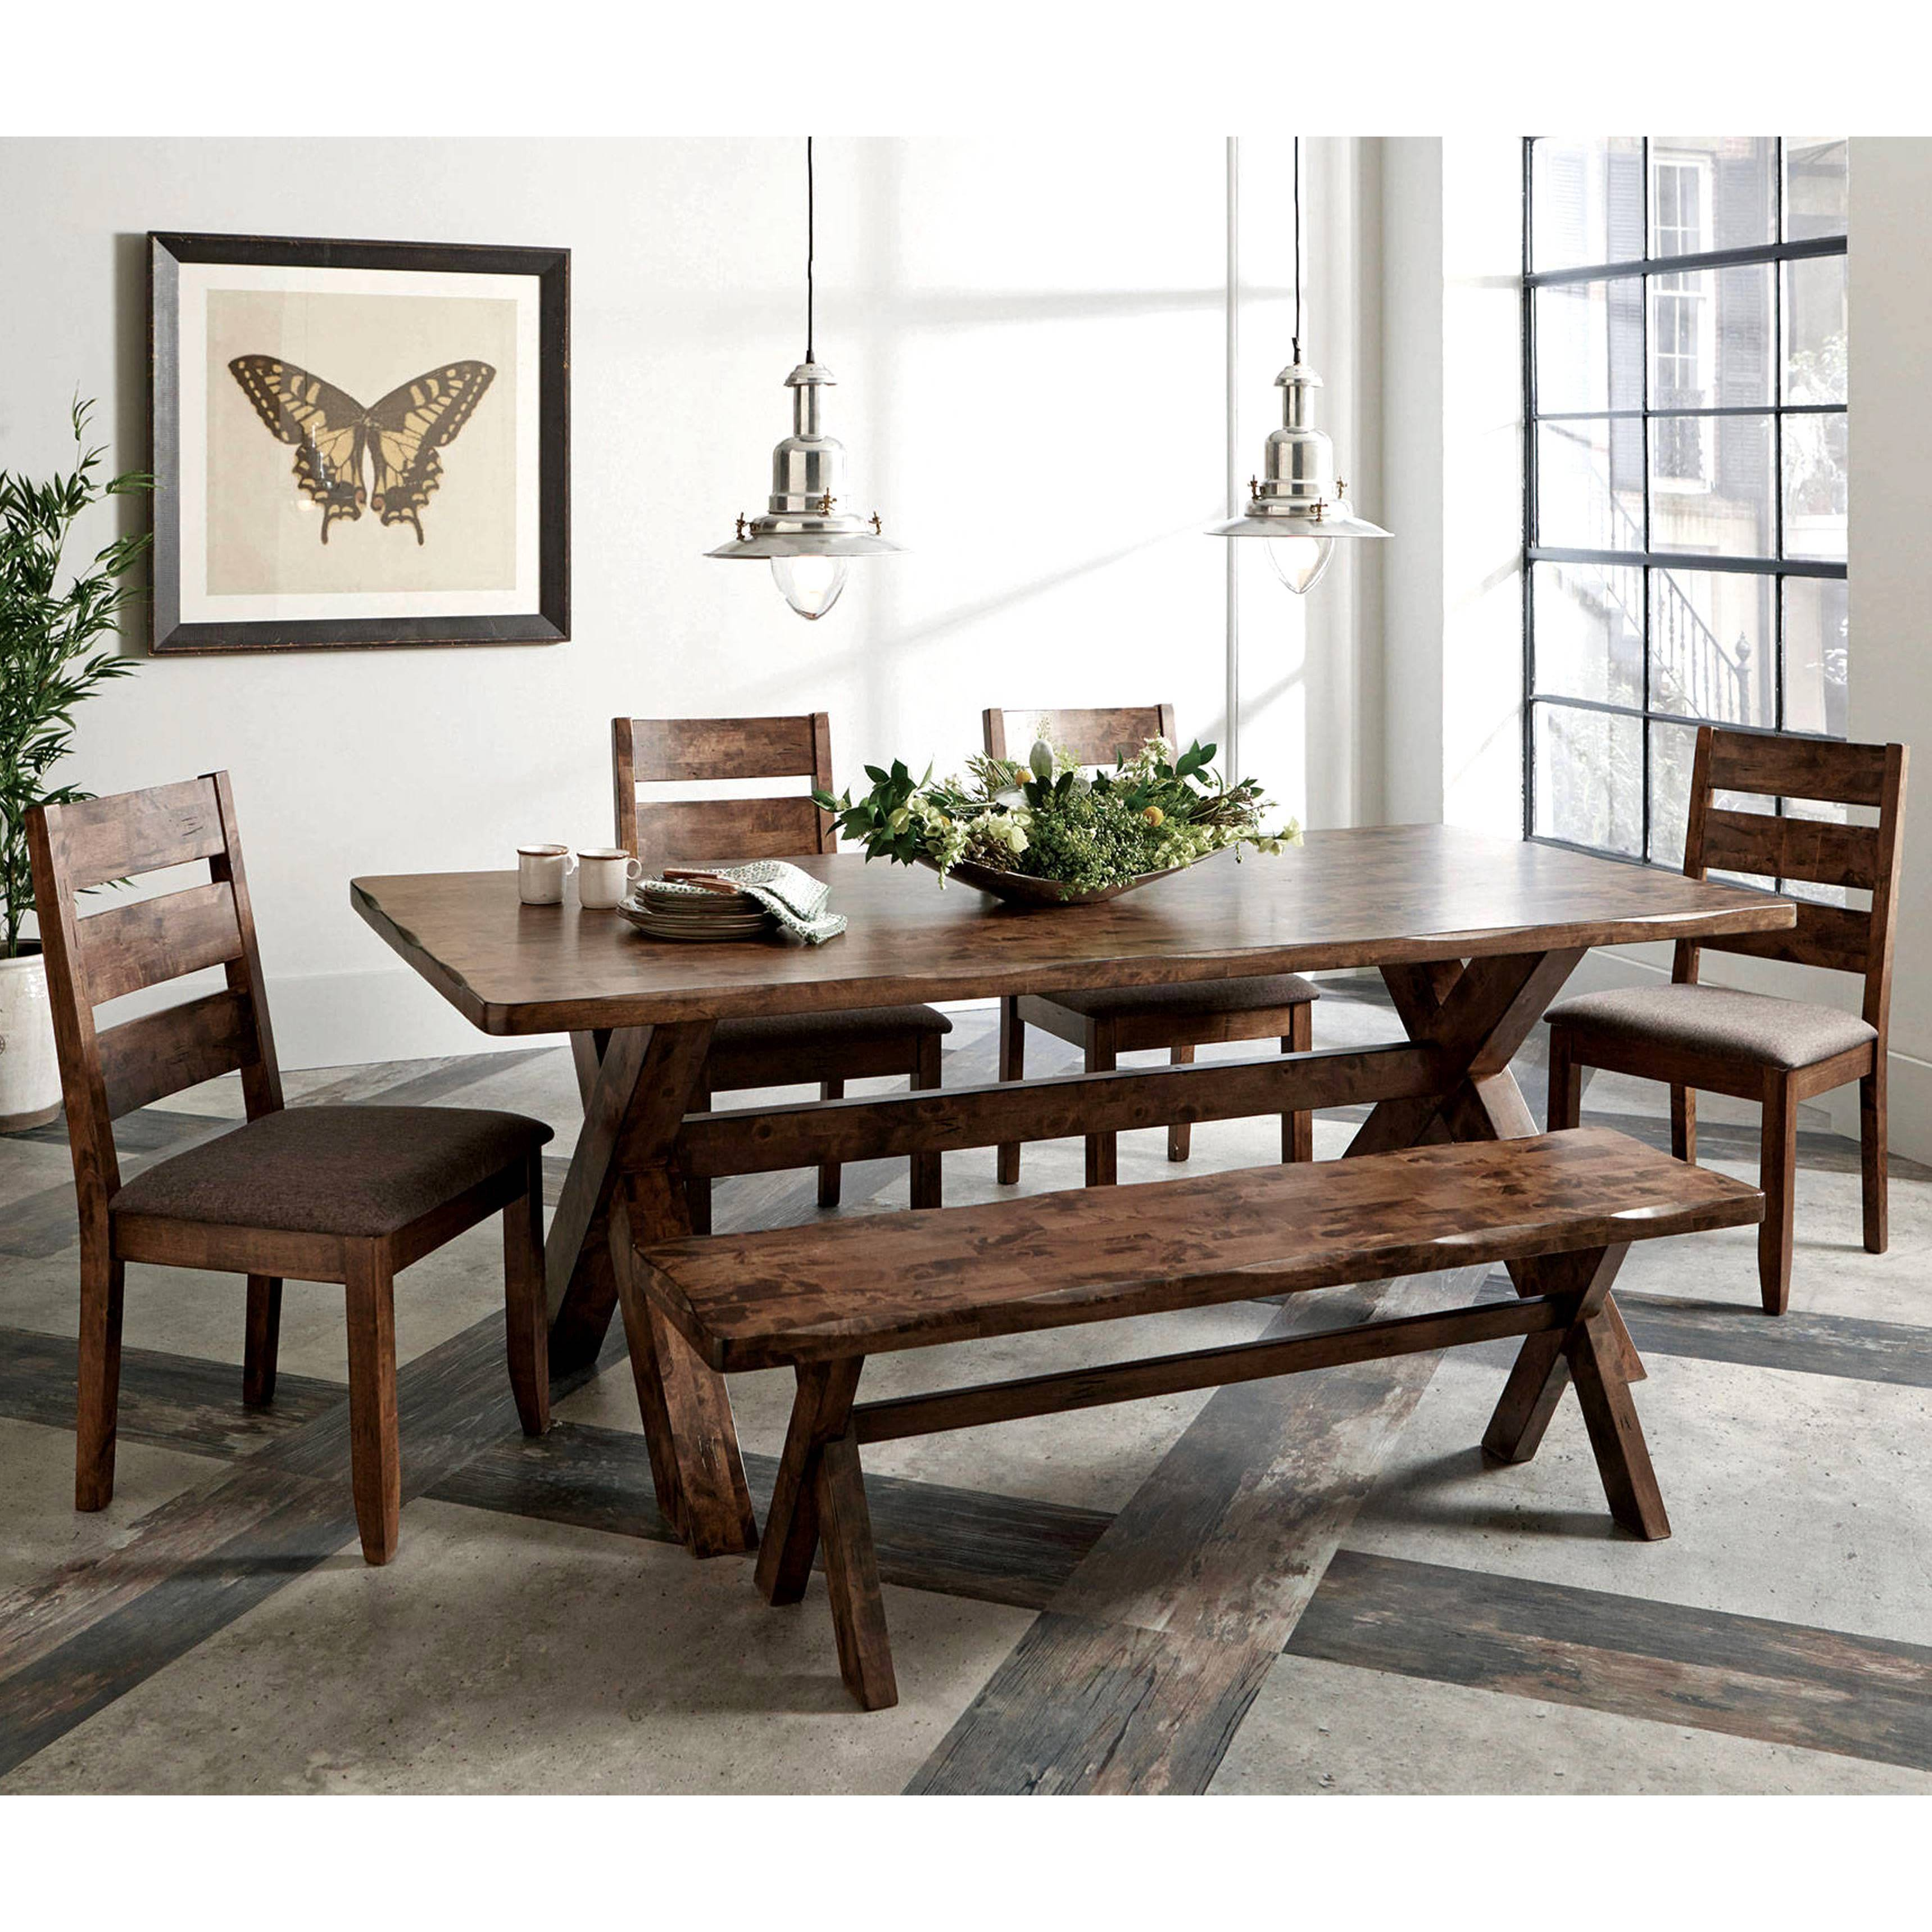 A Line Furniture Rustic Knotty Burl Designed Country Style Dining Set